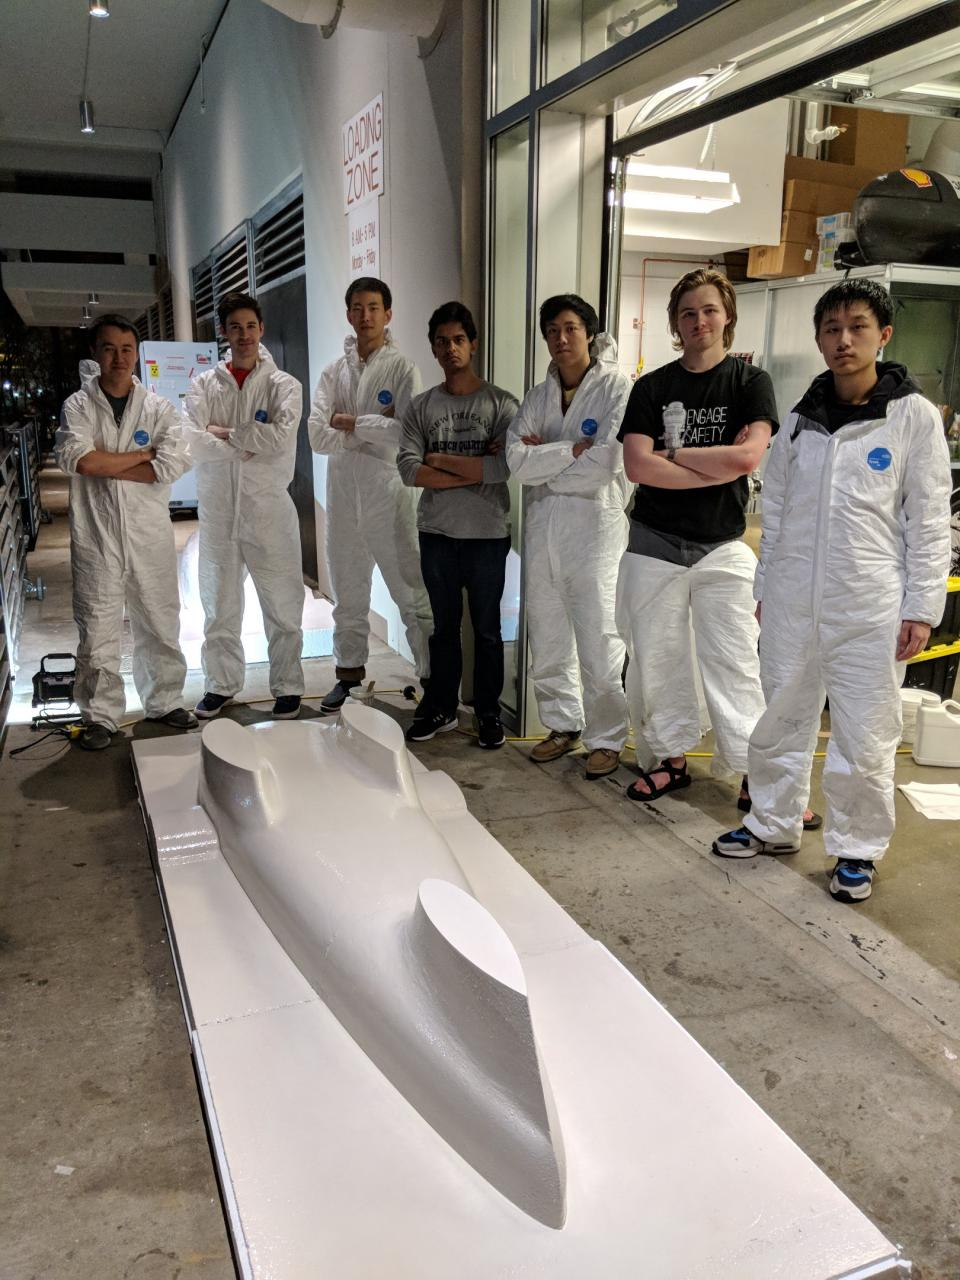 Duke Electric Vehicle forming their vehicle shell